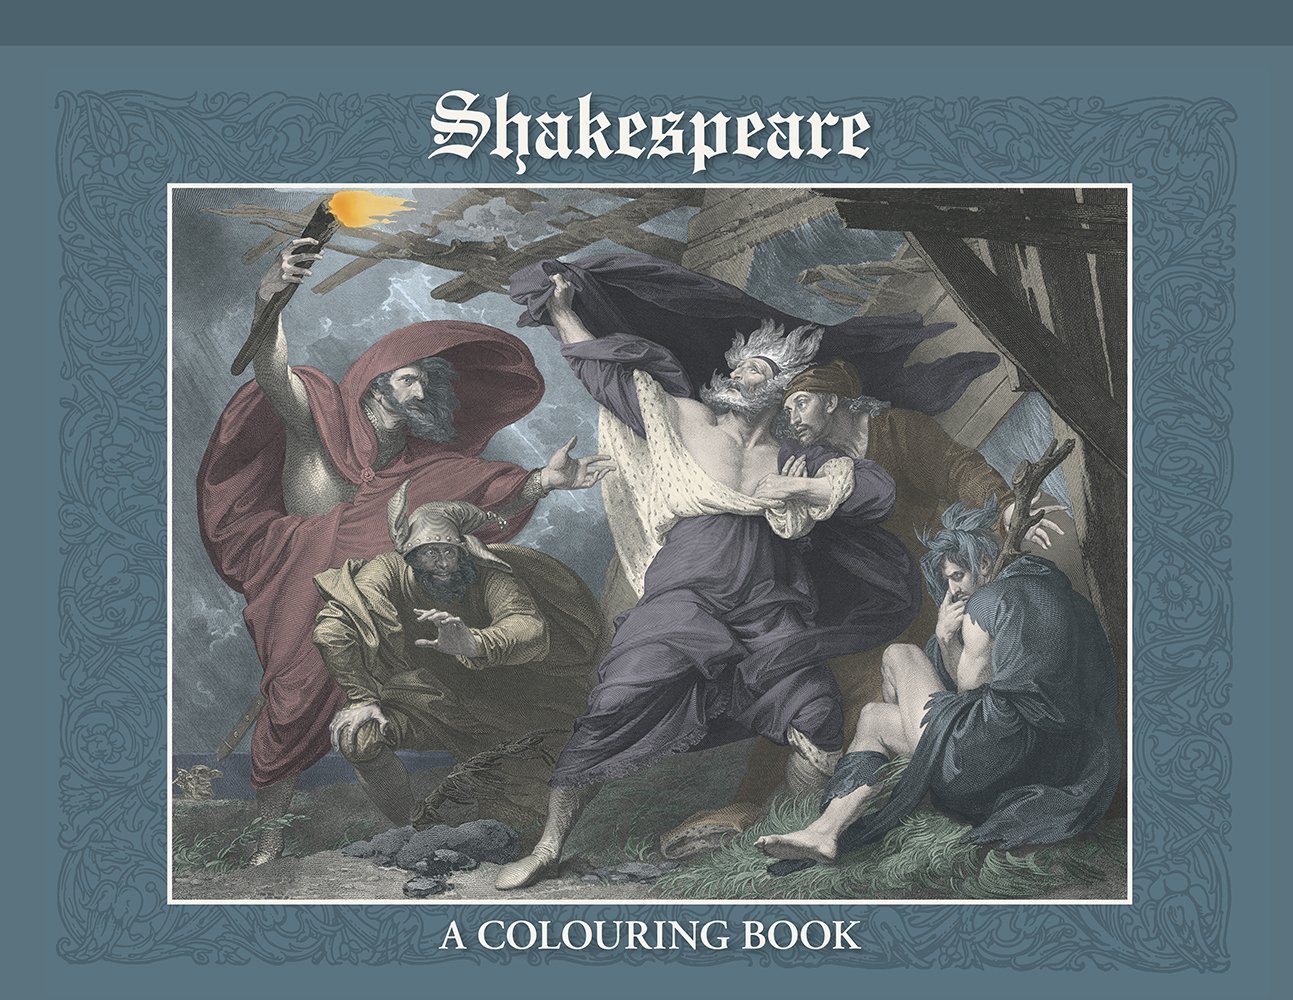 Shakespeare: A Colouring Book